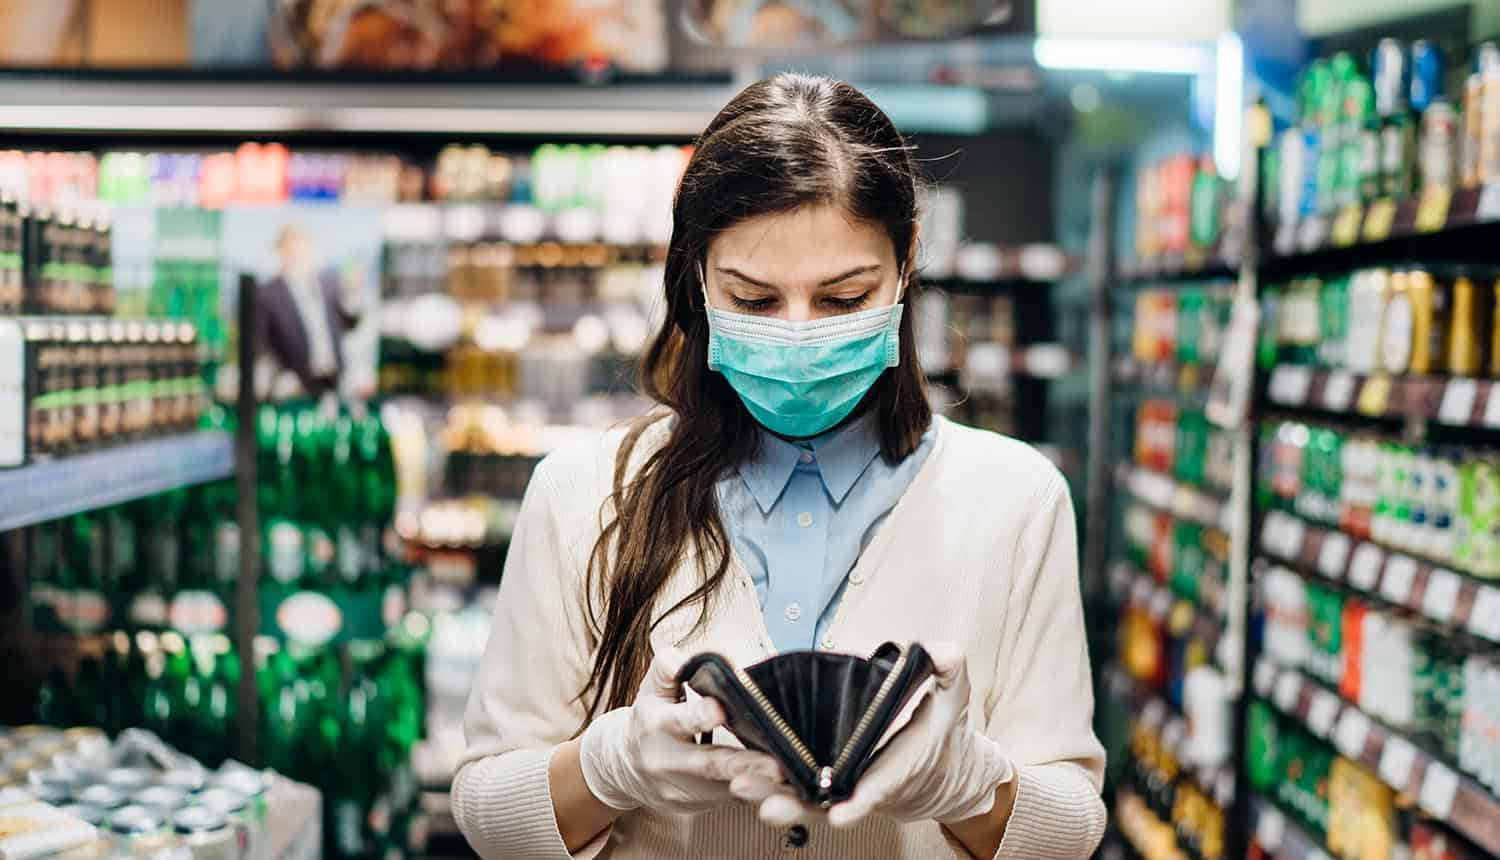 Worried woman with mask groceries shopping in supermarket looking at empty wallet showing identity theft during pandemic